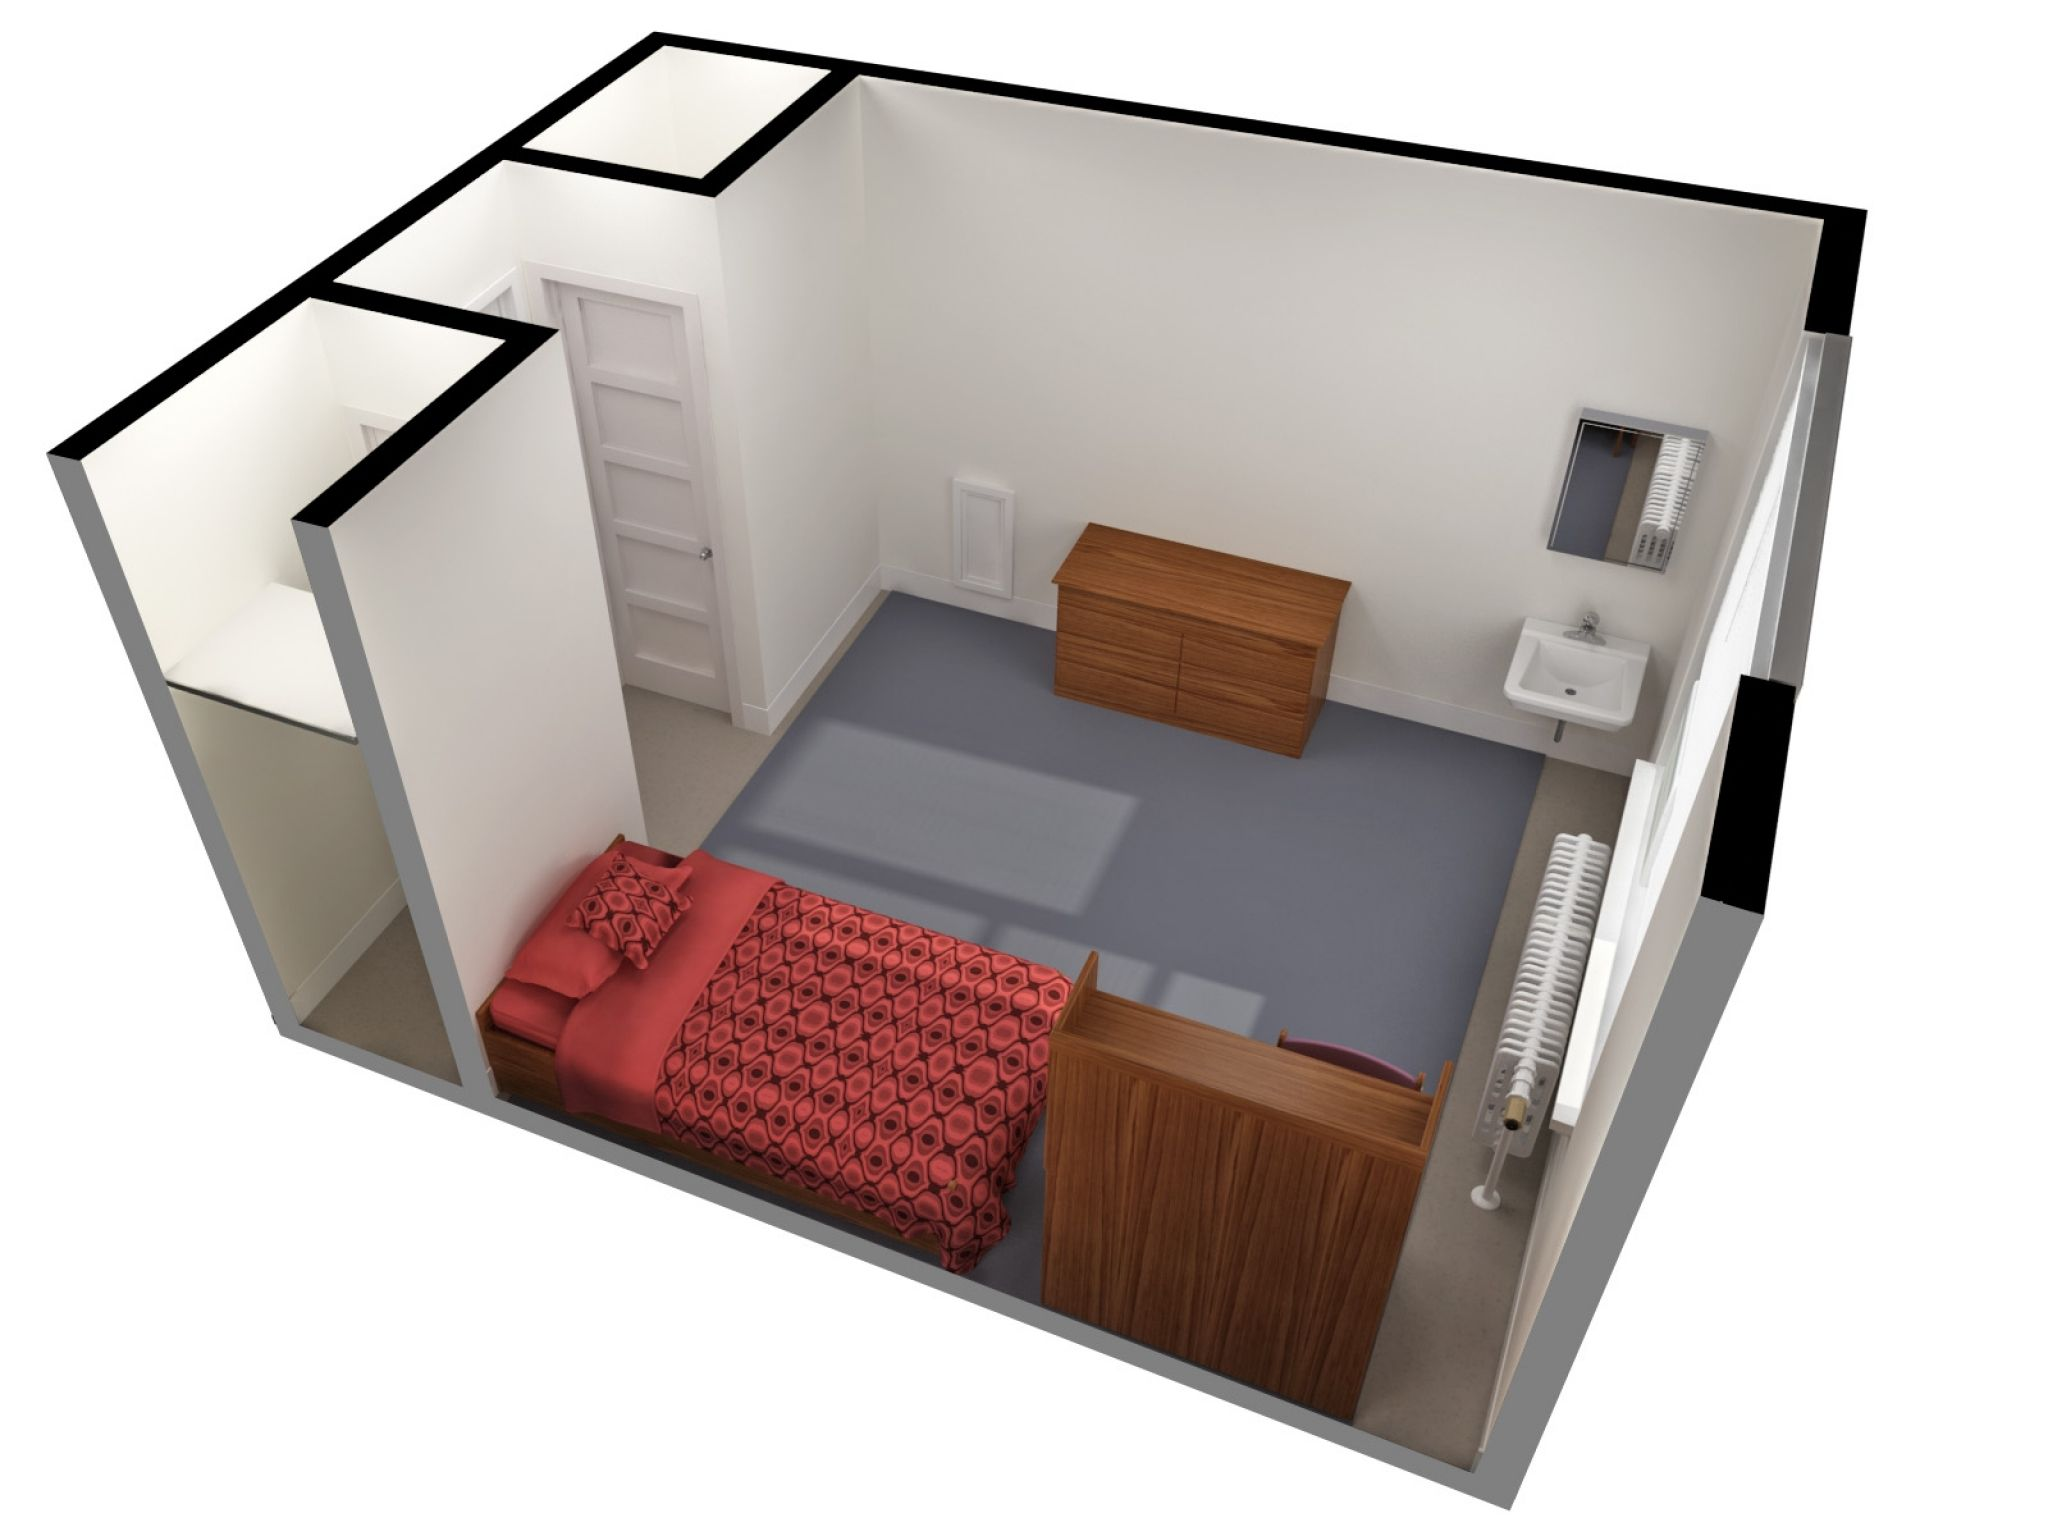 Design A Dorm Room Virtually   Best Interior Wall Paint Check More At Http:/ Part 6